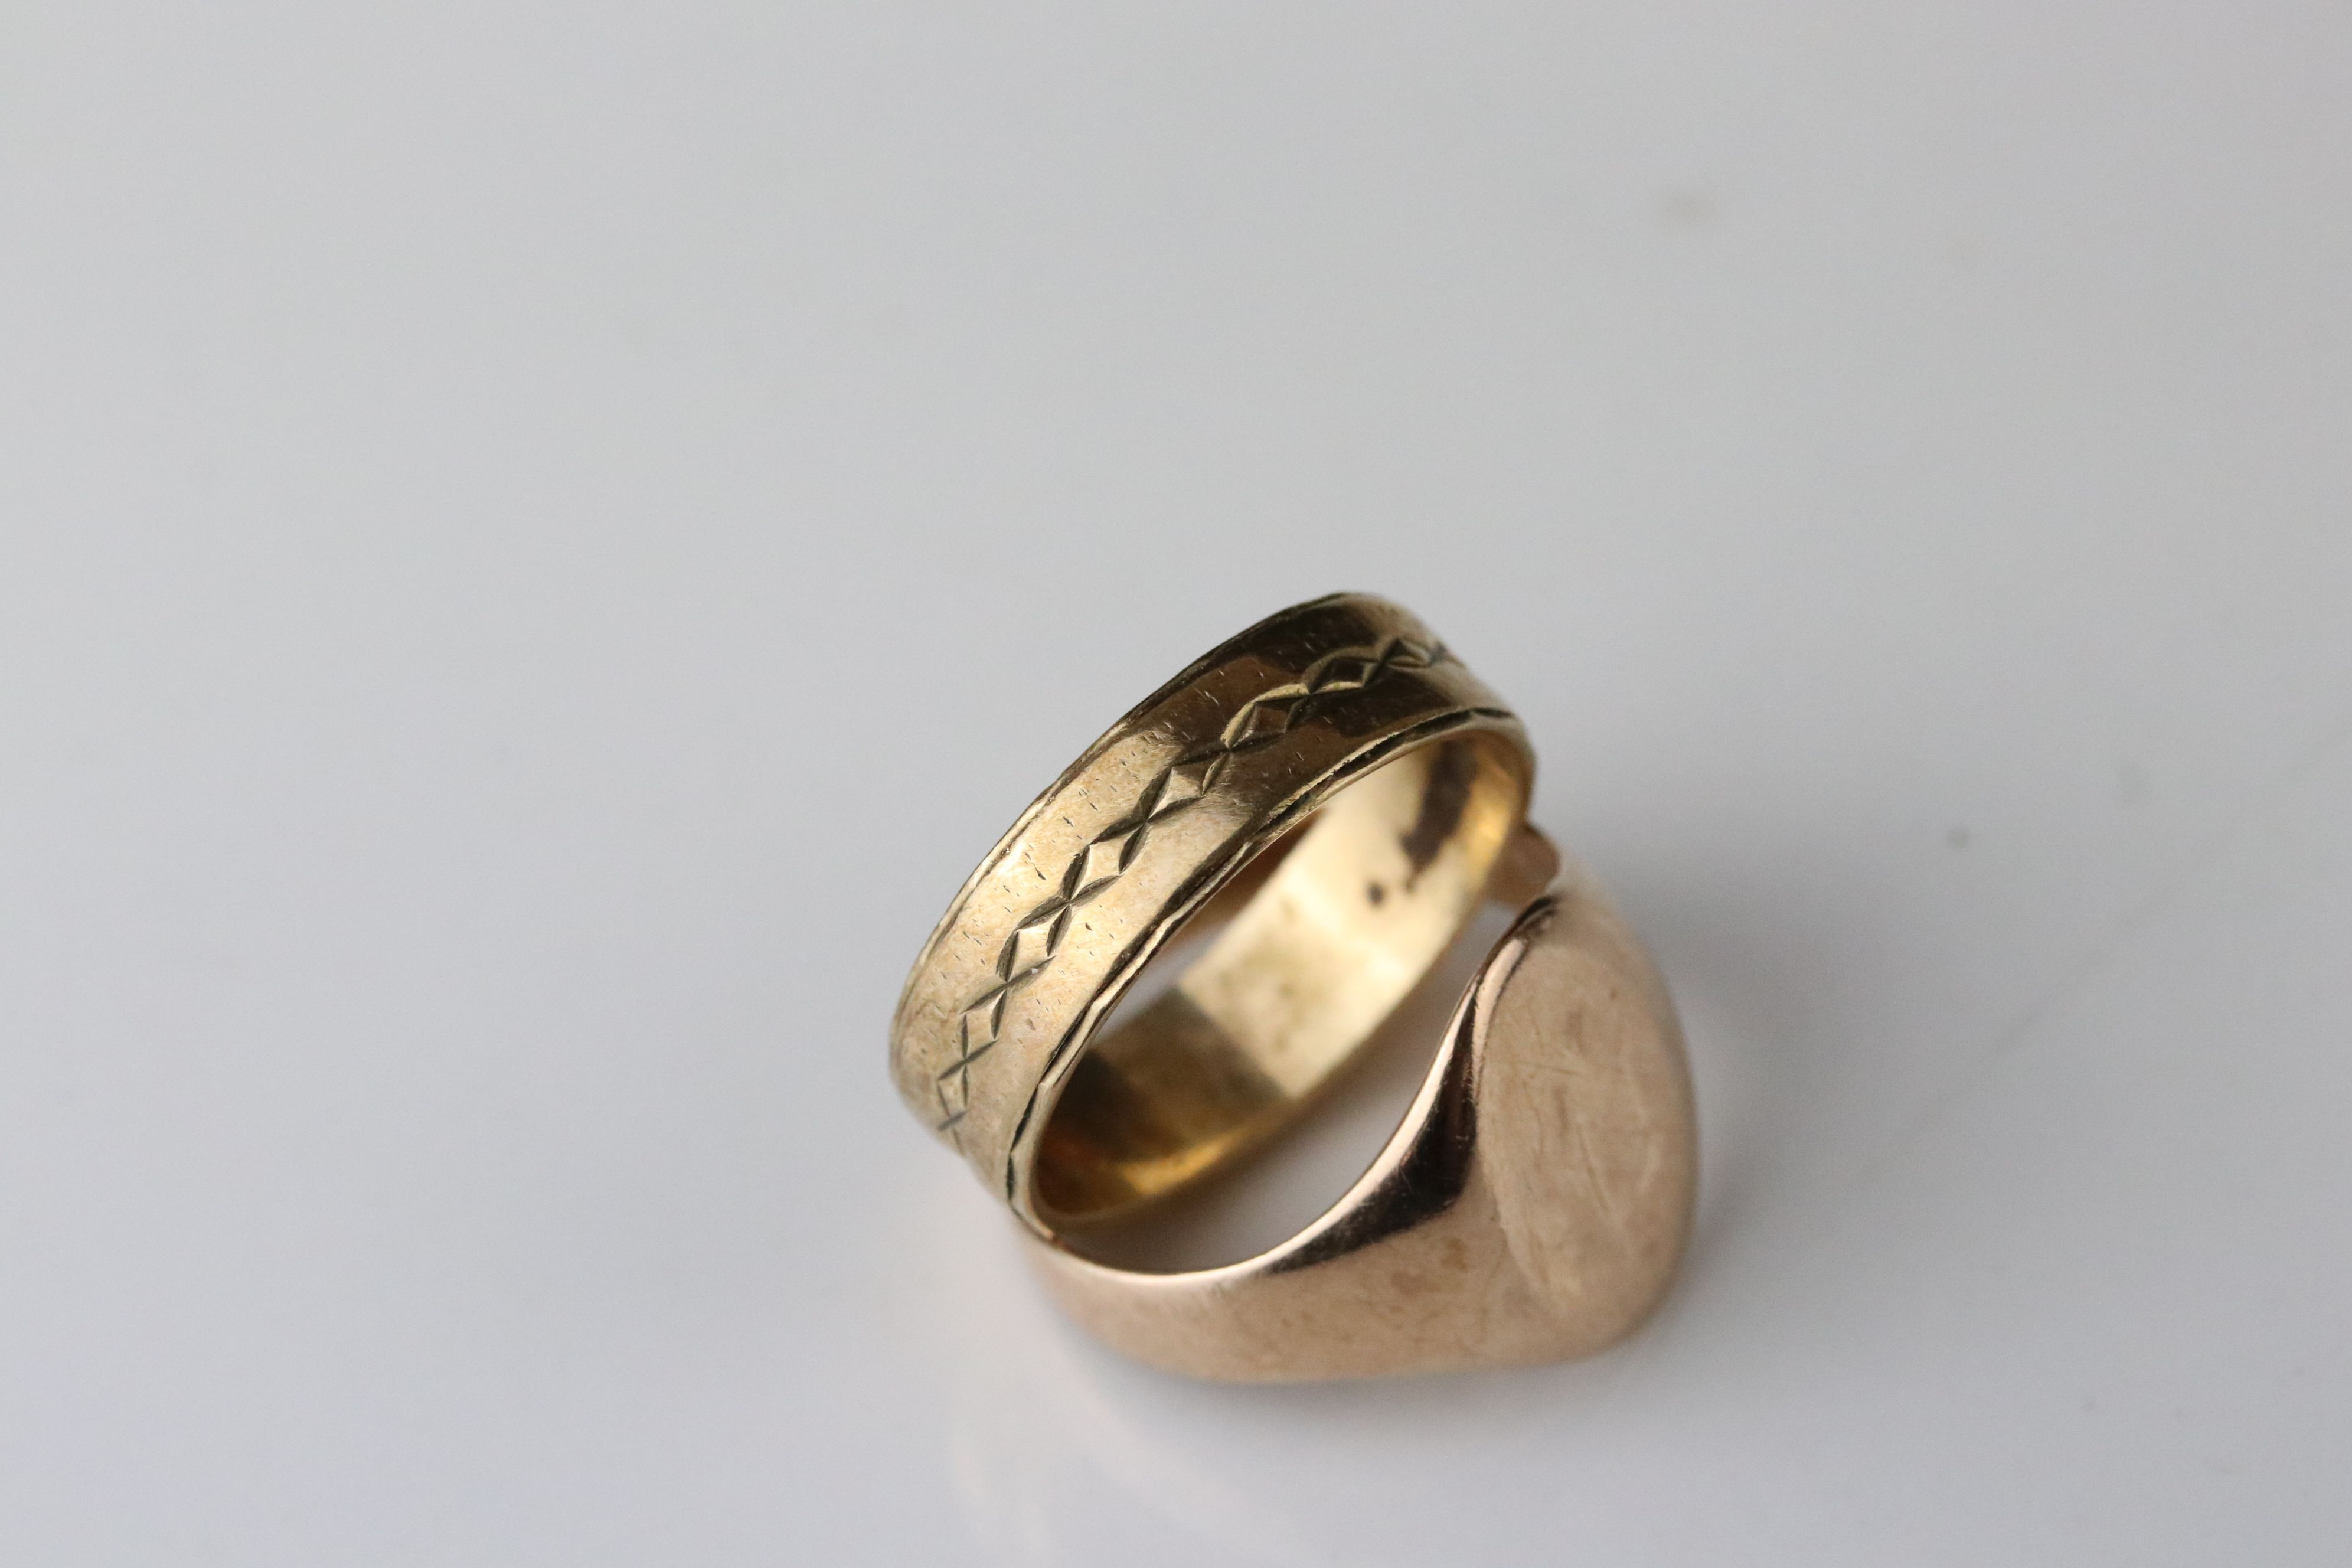 Rose gold signet ring, assessed as 9ct gold, oval panel (possibly with extremely rubbed monogram), - Image 3 of 4